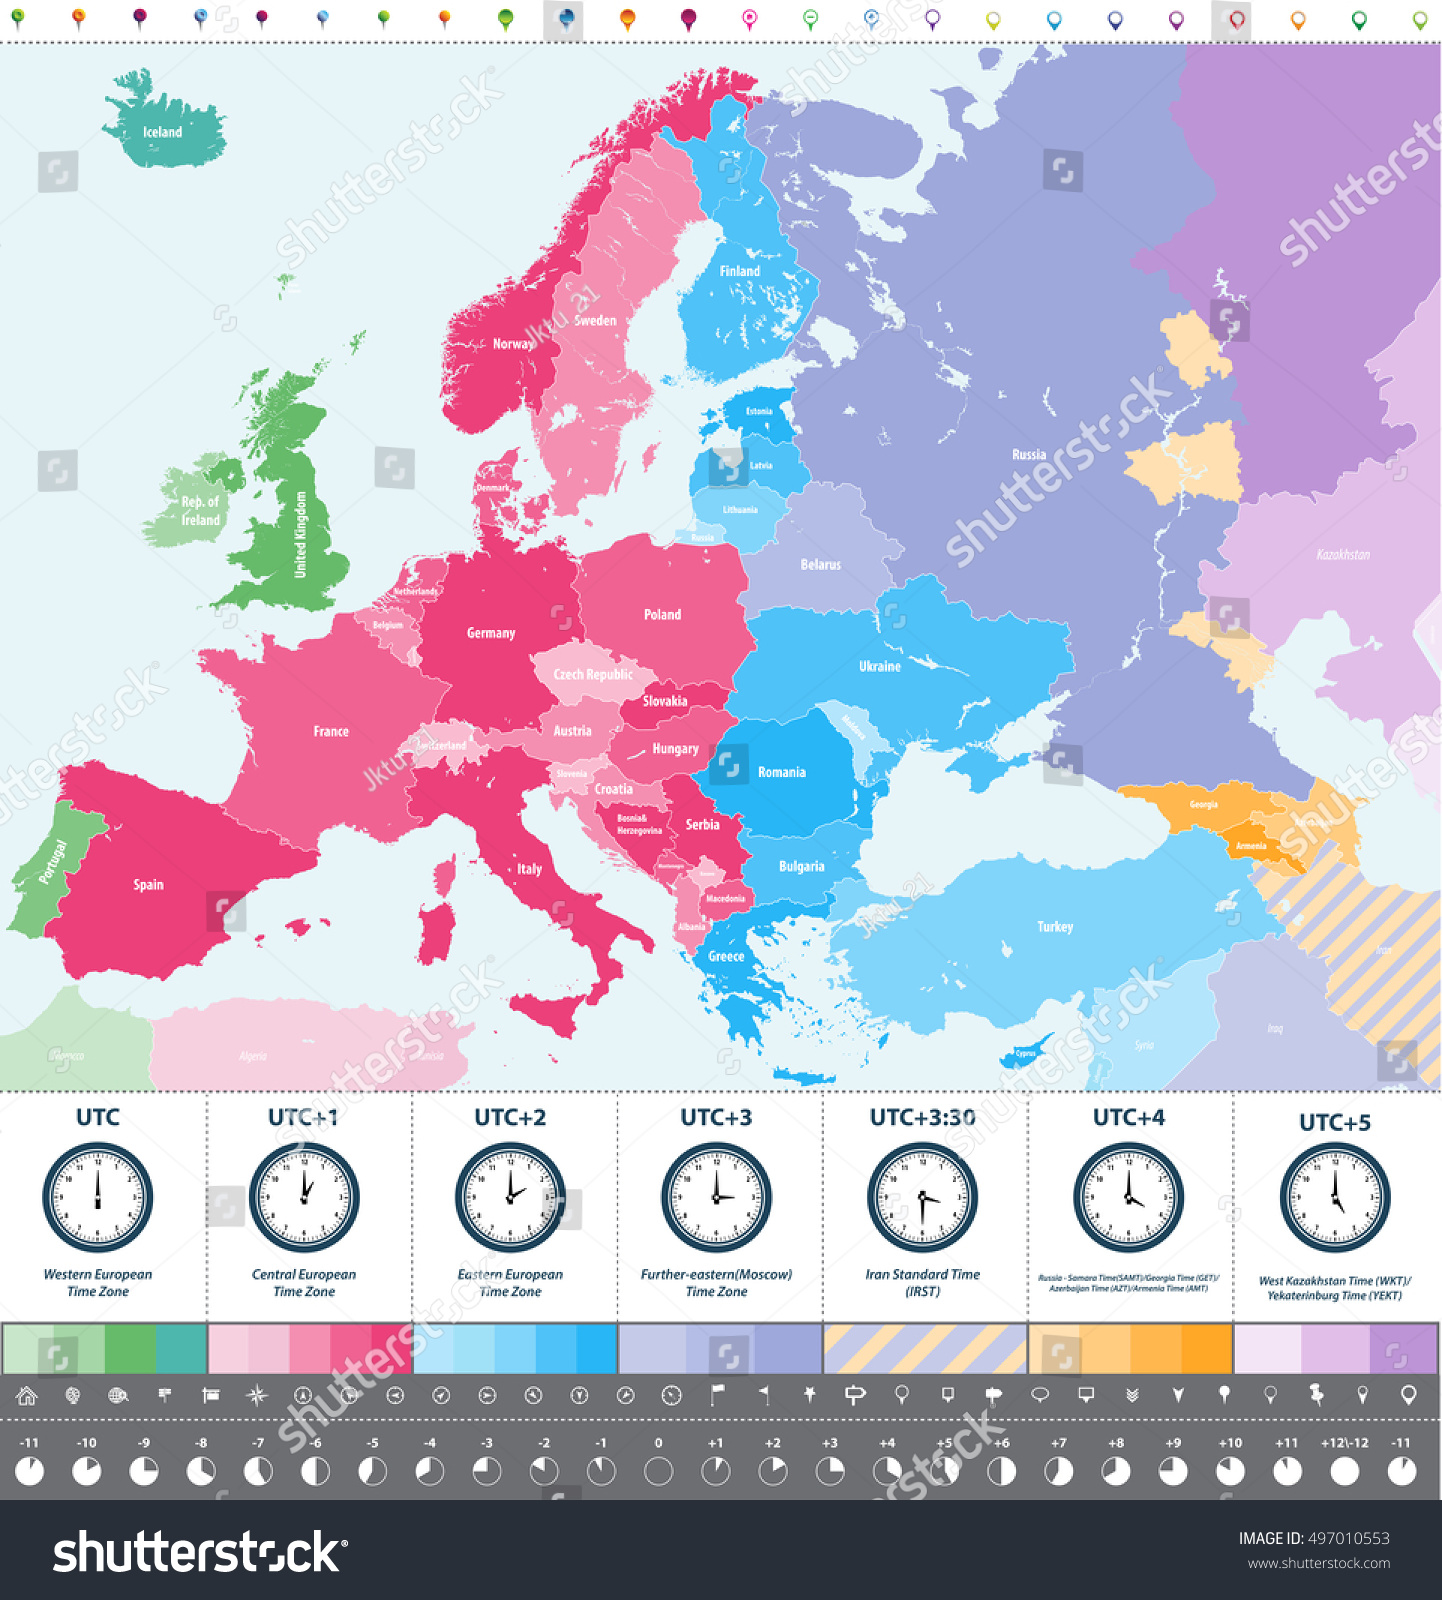 Europe Time Zones High Detailed Map Stock Vector 497010553 Shutterstock